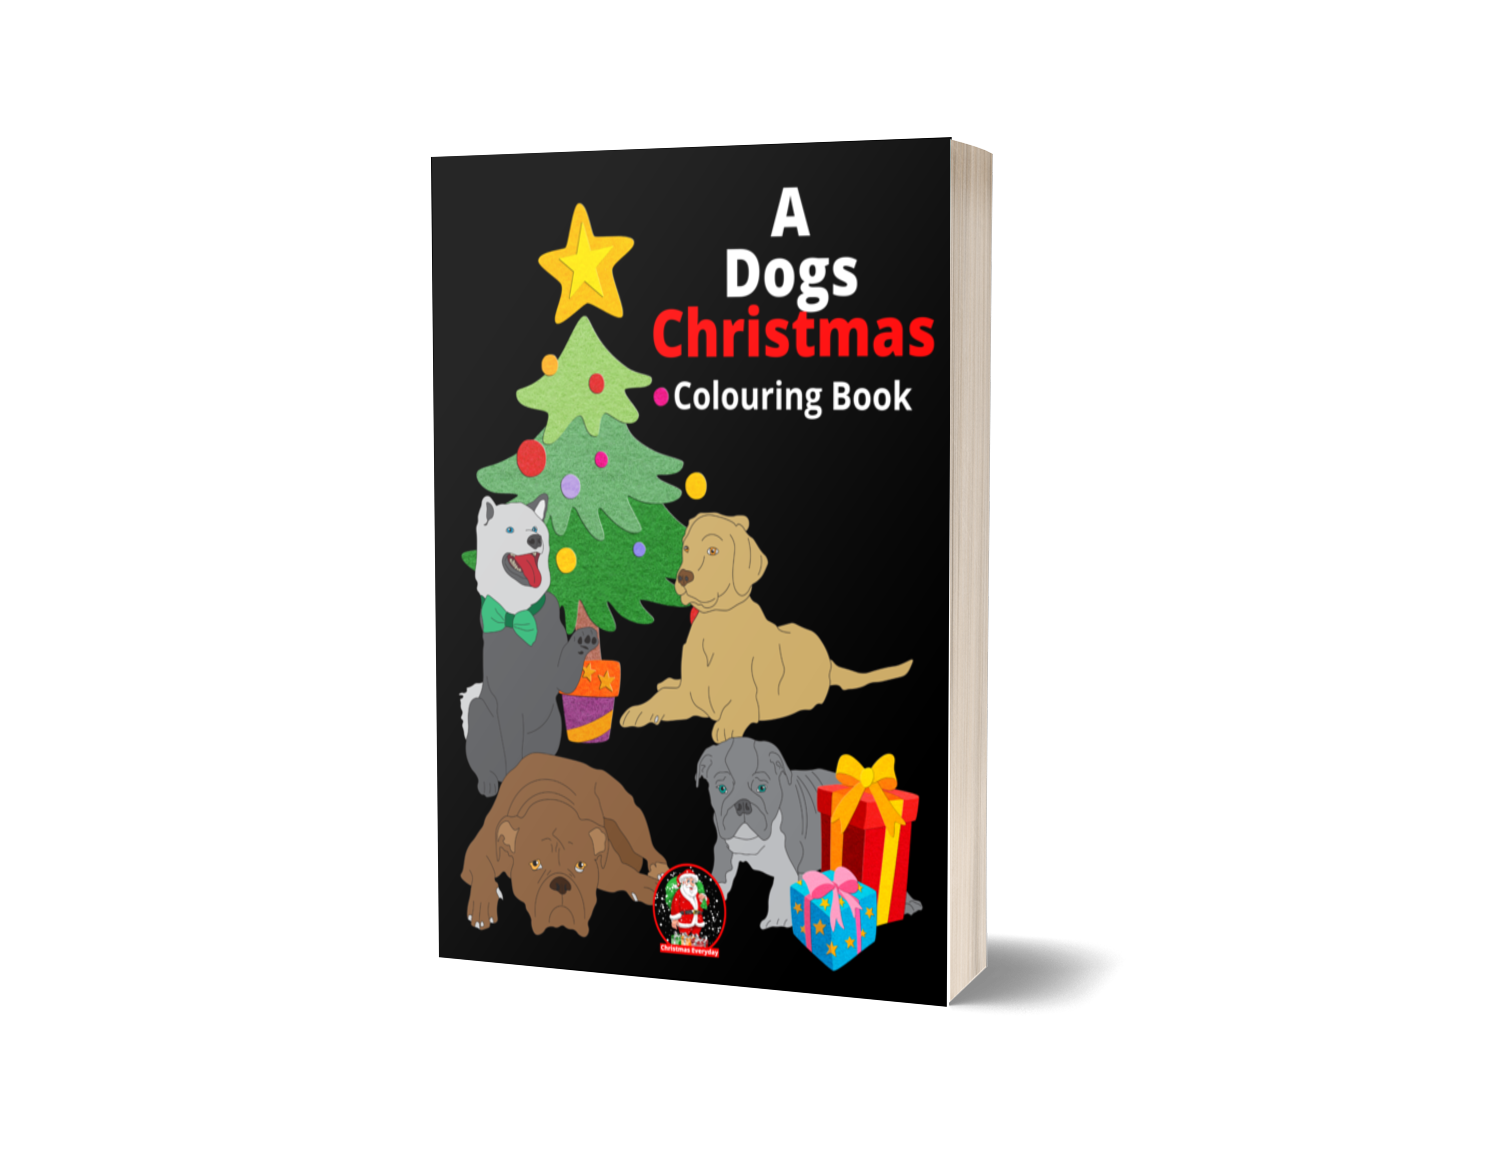 A Dogs Christmas Colouring Book